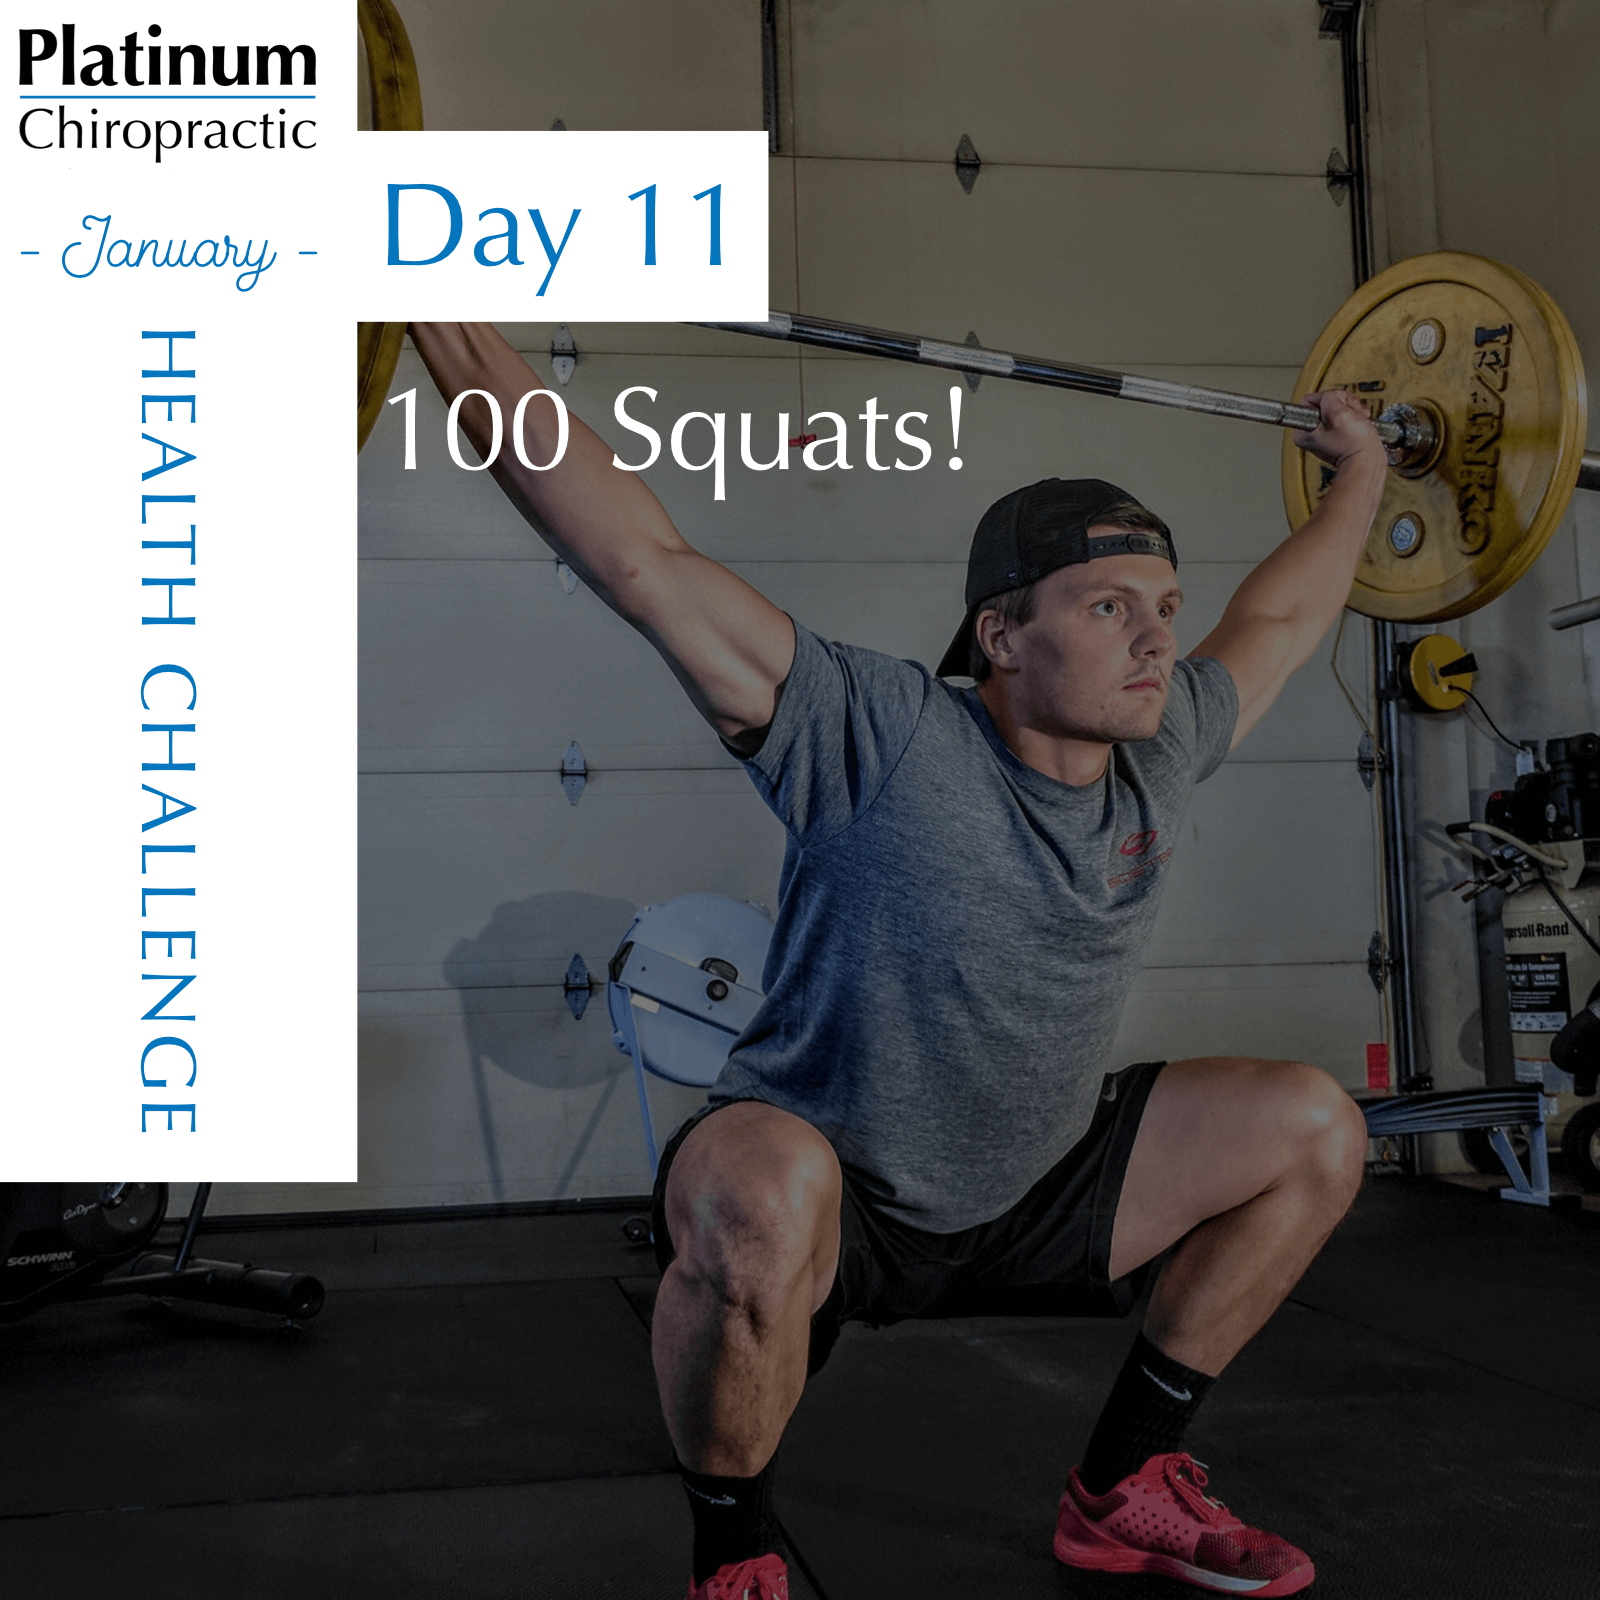 Scaling Options:  1) Accumulate 100 squats throughout the day. Feel free to add weight with a medicine ball, barbell, or stick with bodyweight.  2) Accumulate 50 squats throughout the day. Trust us, you can do it!  3) Accumulate 30 squats throughout the day. While our joints love full range of motion, if you cant go below parallel, feel free to use a target such as sitting on a chair, bench, or medicine ball.